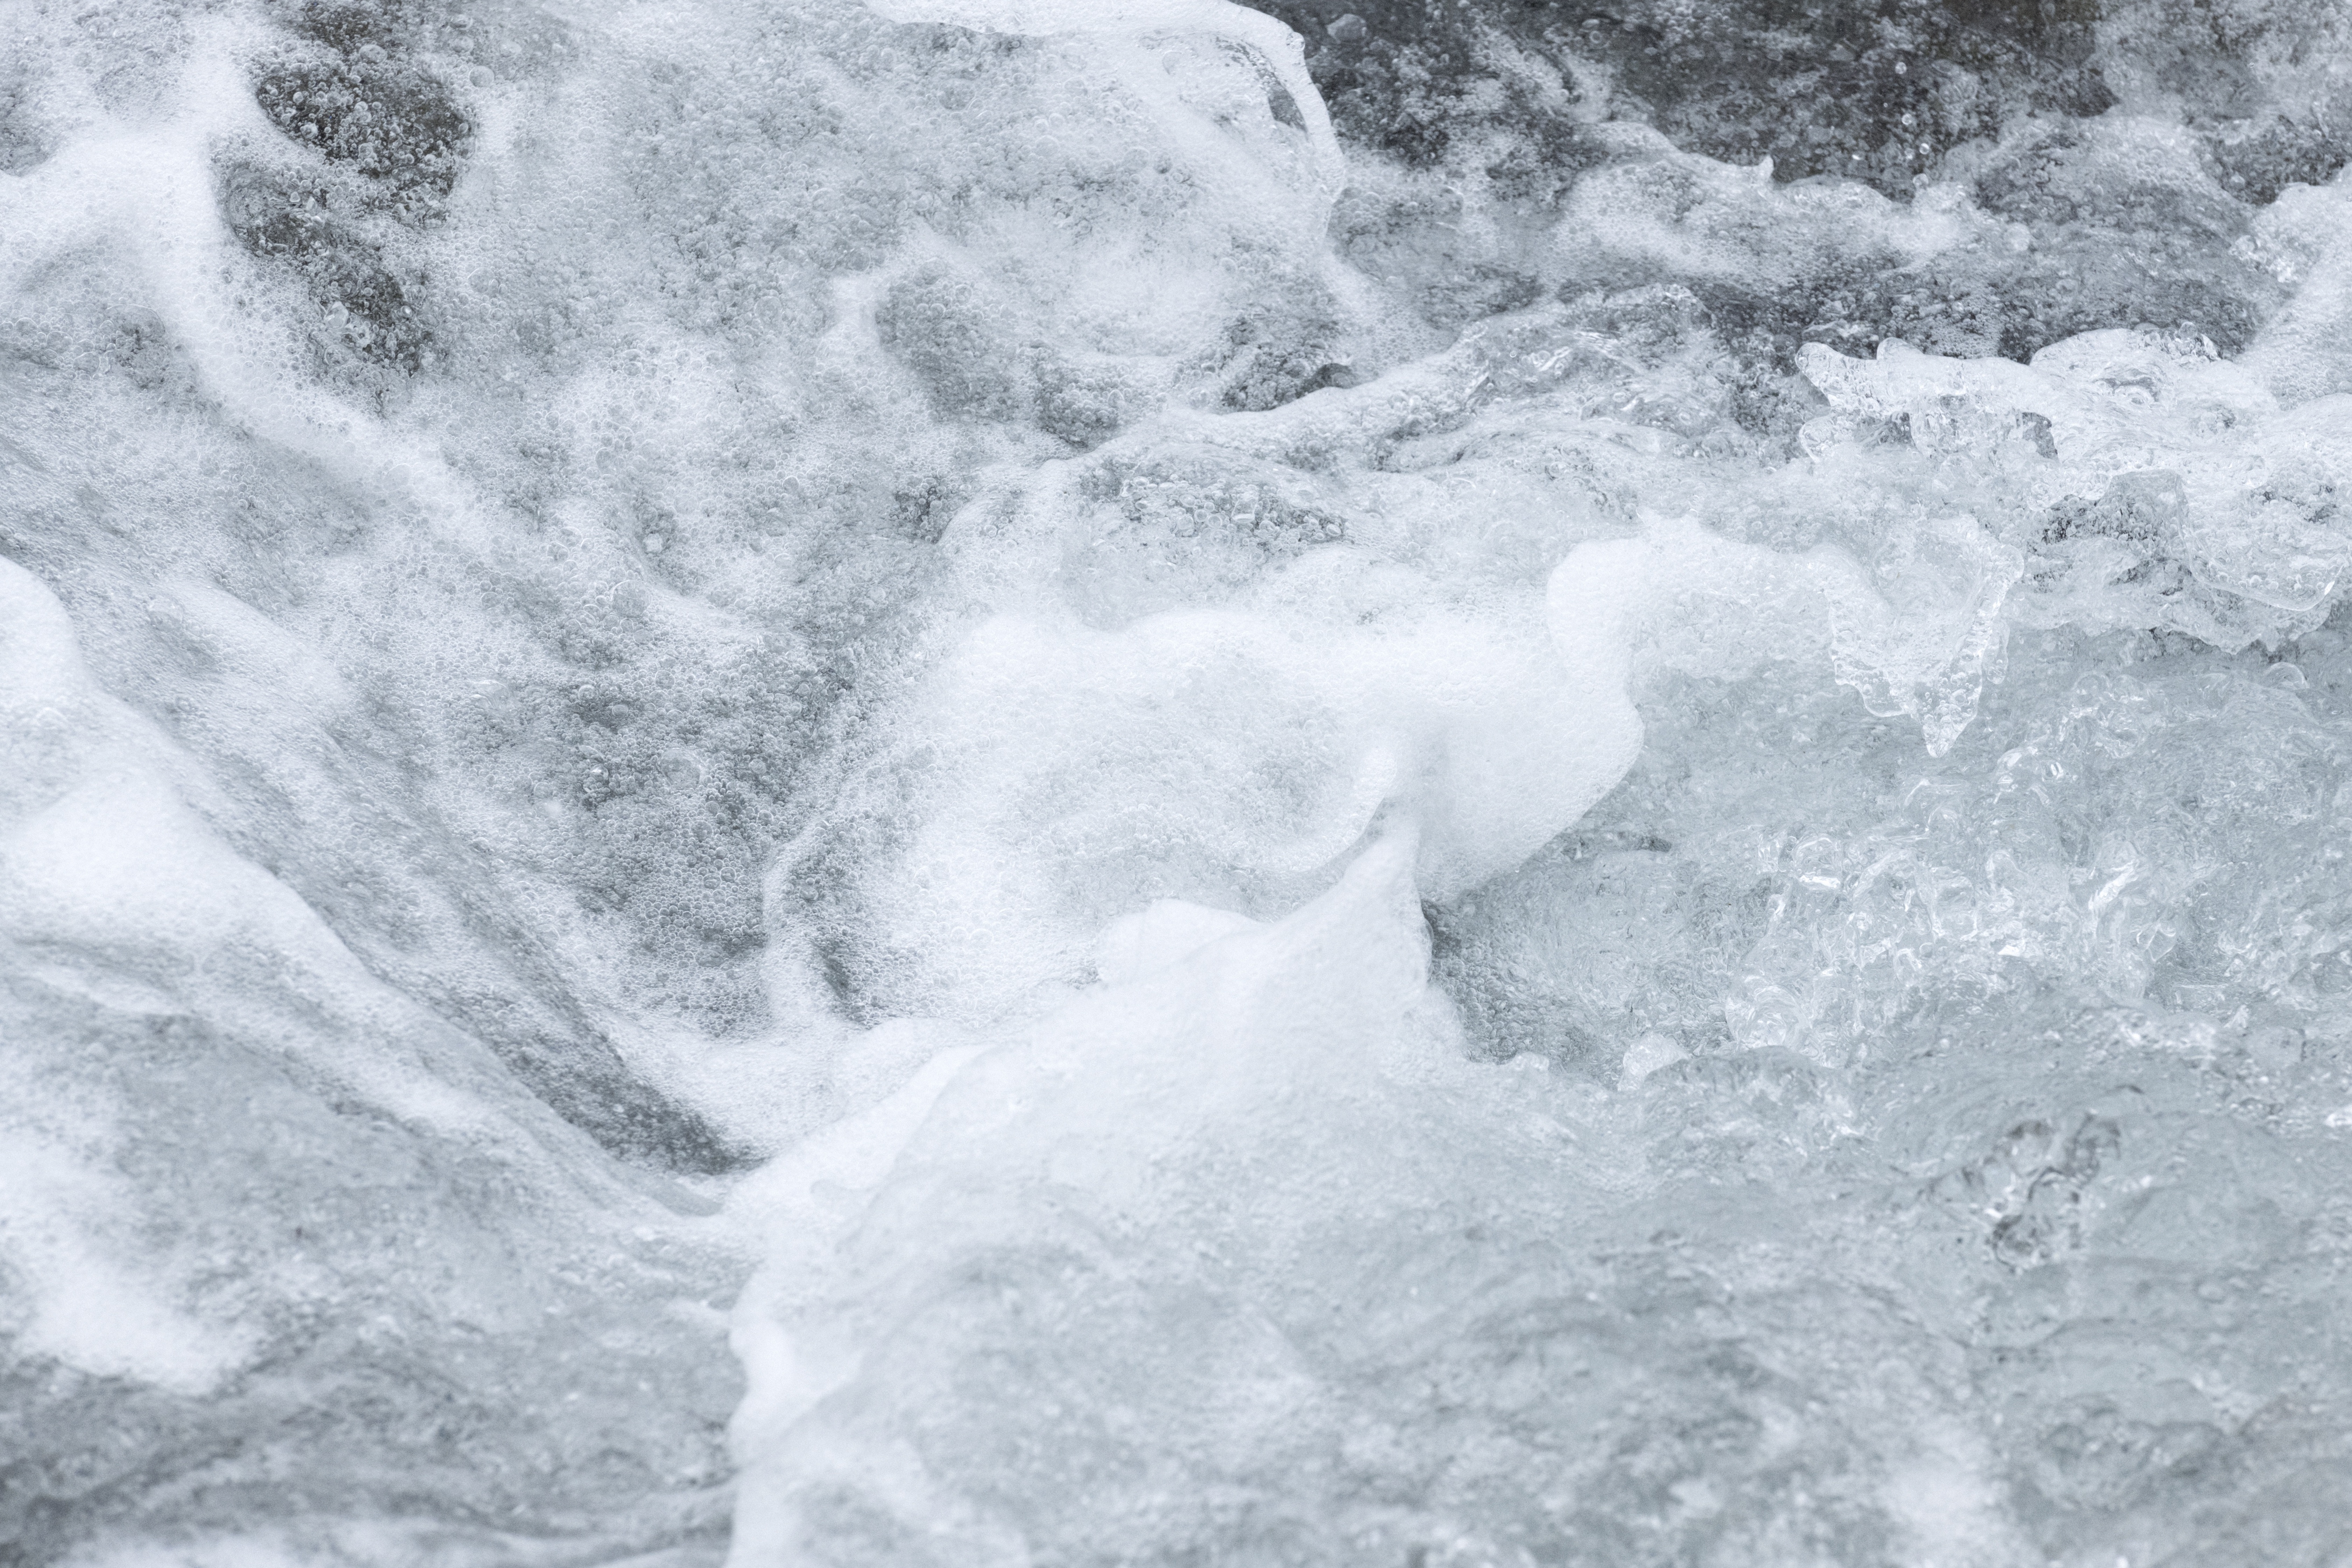 Image of swirly and foaming water in a stream.